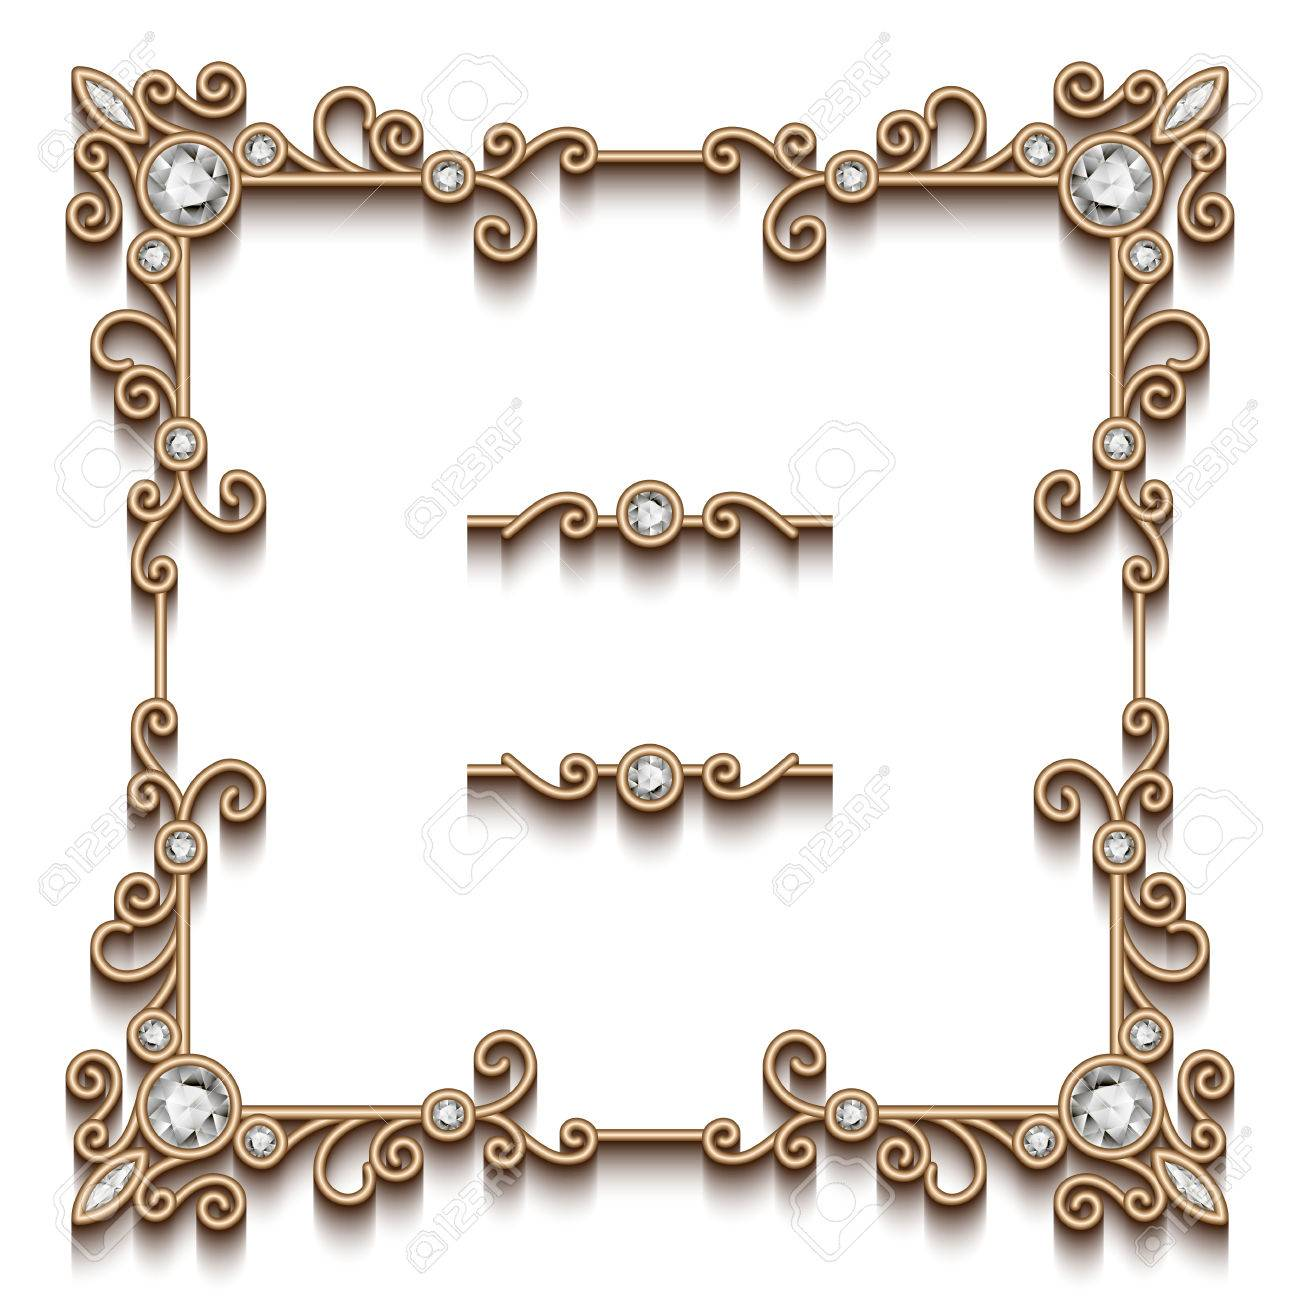 vector vintage gold square jewelry frame on white background